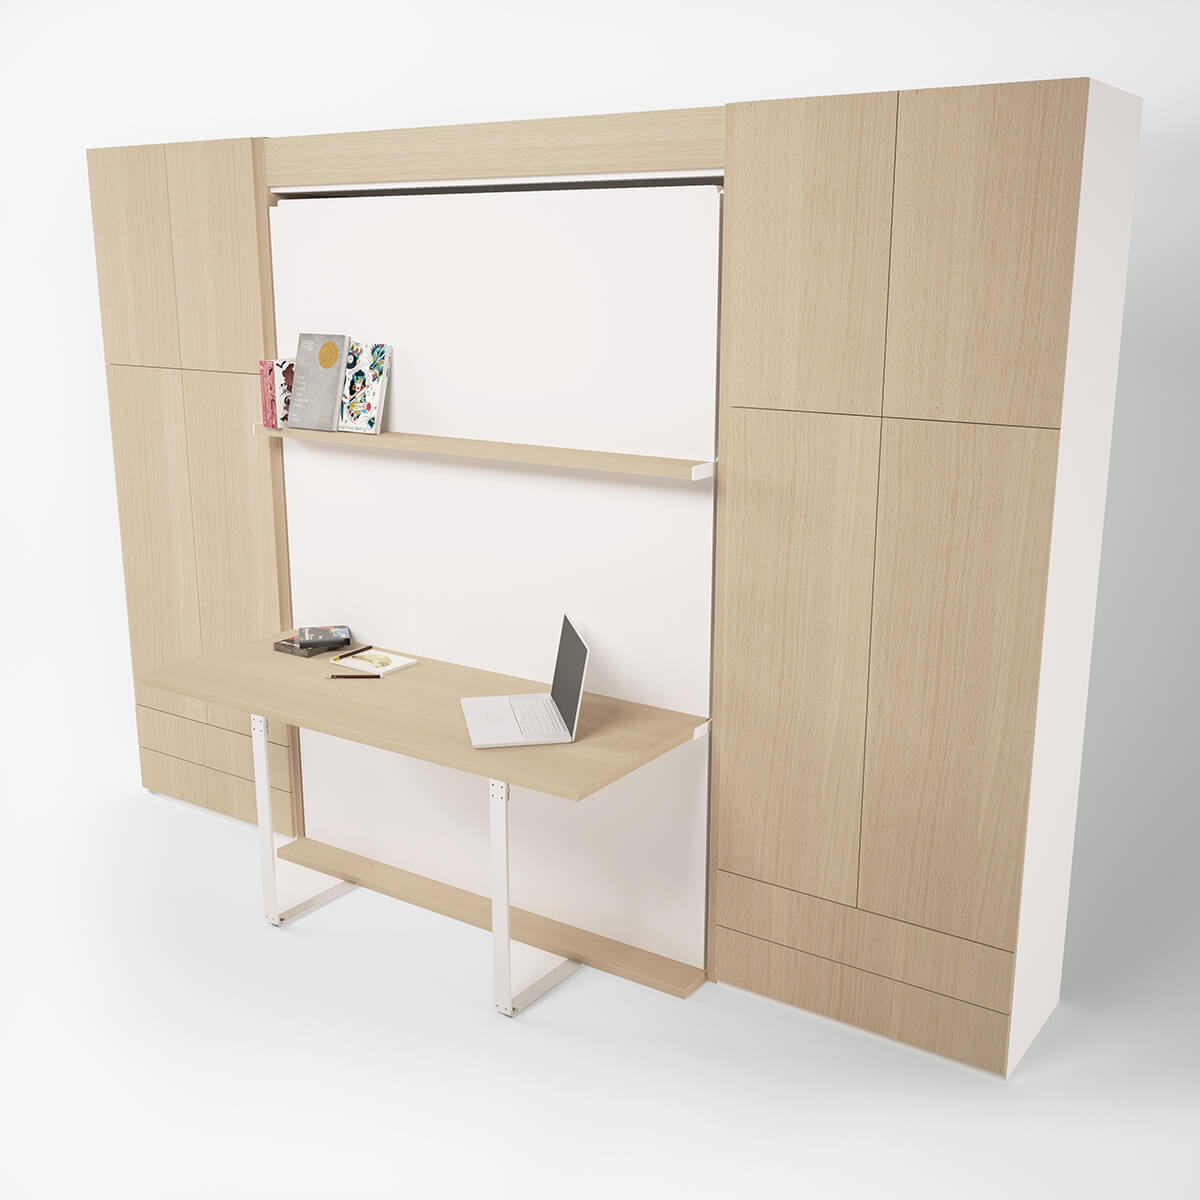 Queen Wall Bed With Desk Bellezza T